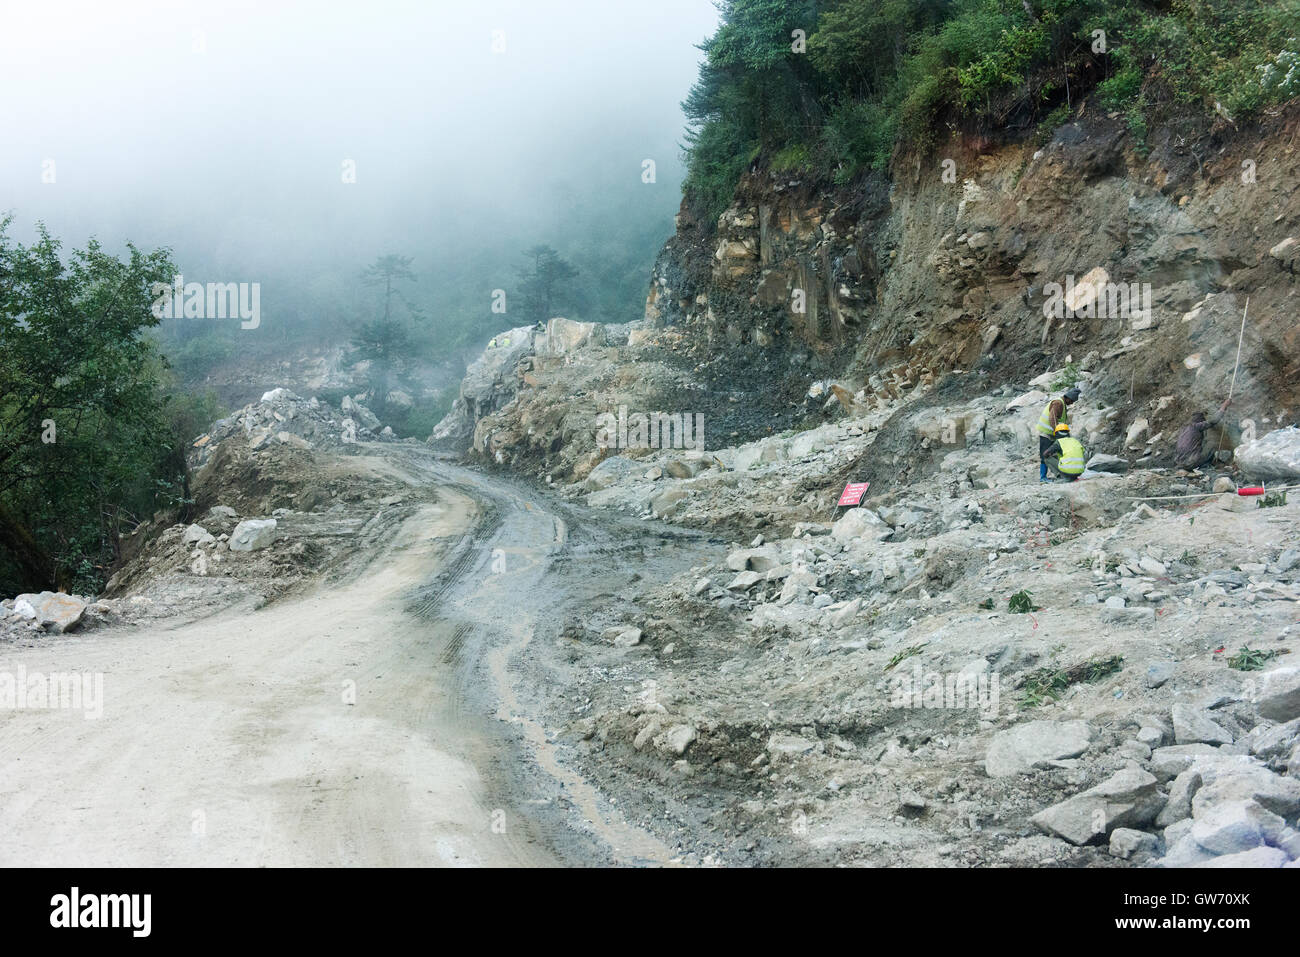 Road widening project between Bumthang and Trongsa. - Stock Image